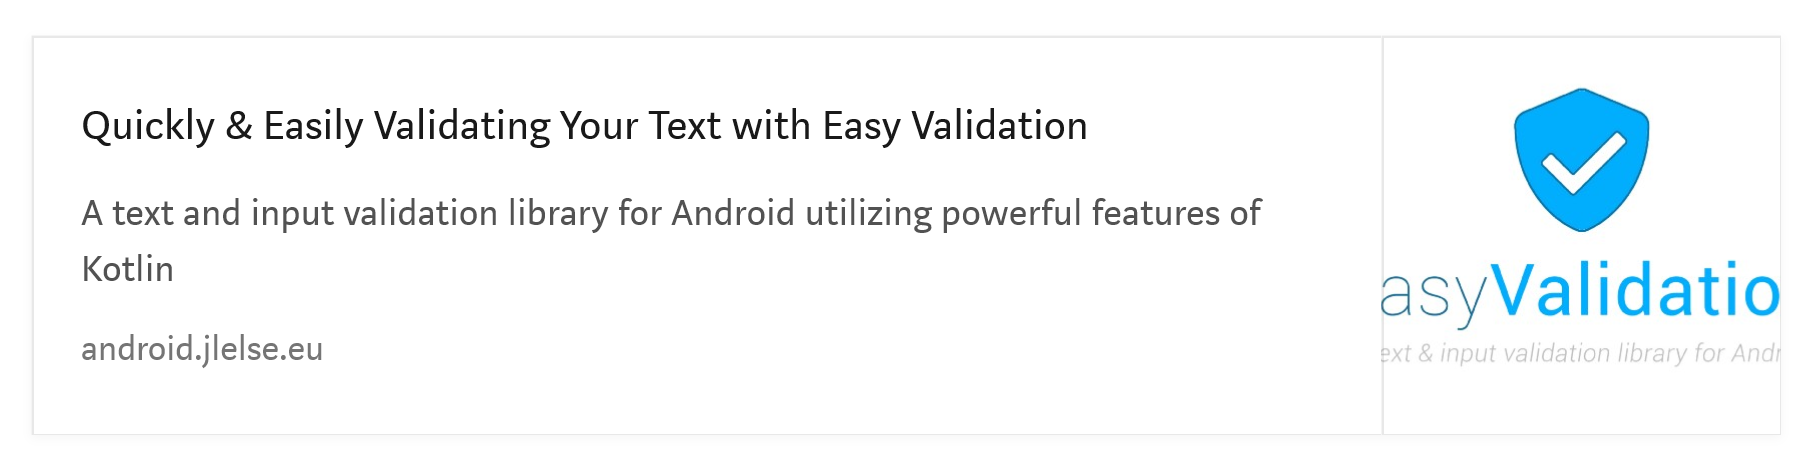 Easy Validation Android Library